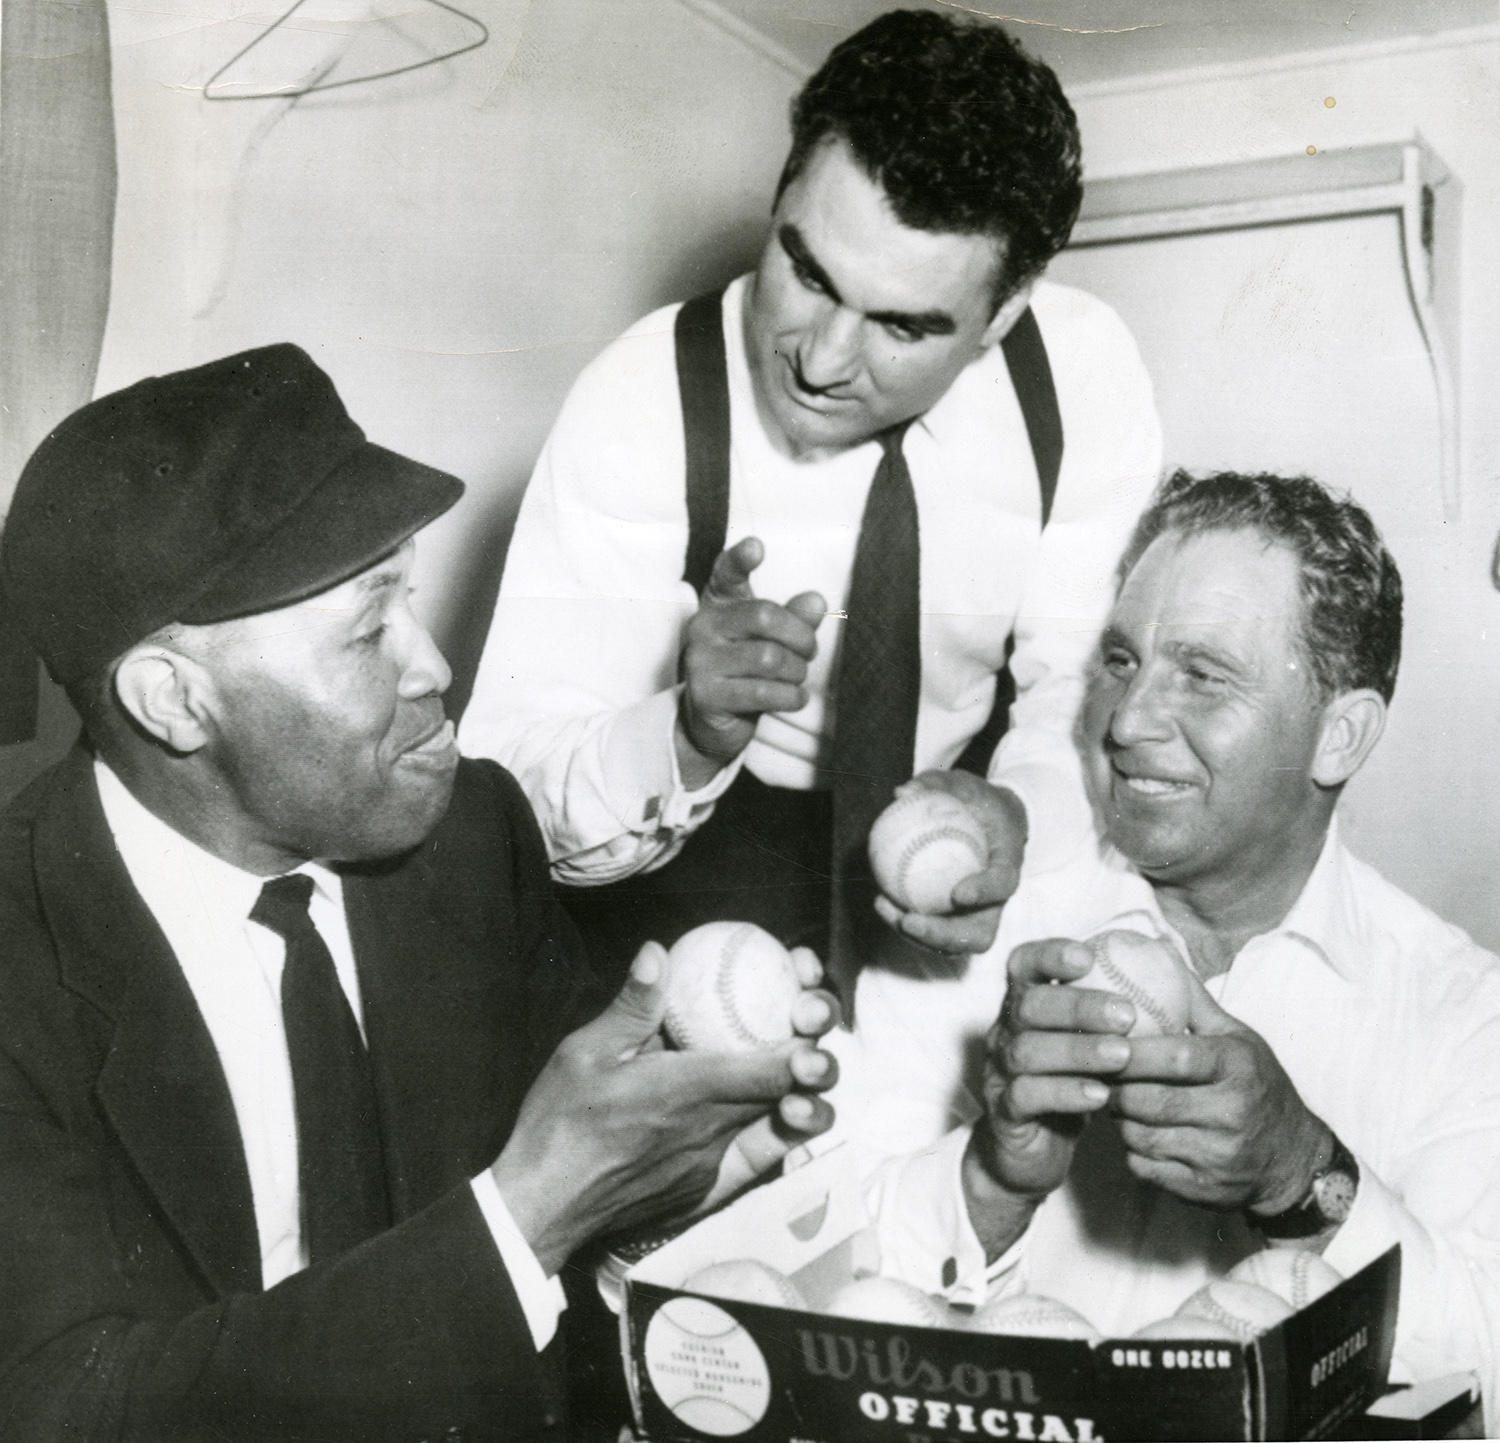 """Cece Carlucci (center) was a mentor for Emmett Ashford (left) while he was working in the Pacific Coast League. Mickey Hanich (right) also worked as an umpire in the PCL. <a href=""""http://collection.baseballhall.org/islandora/object/islandora%3A299332"""">PASTIME</a> (National Baseball Hall of Fame and Museum)"""